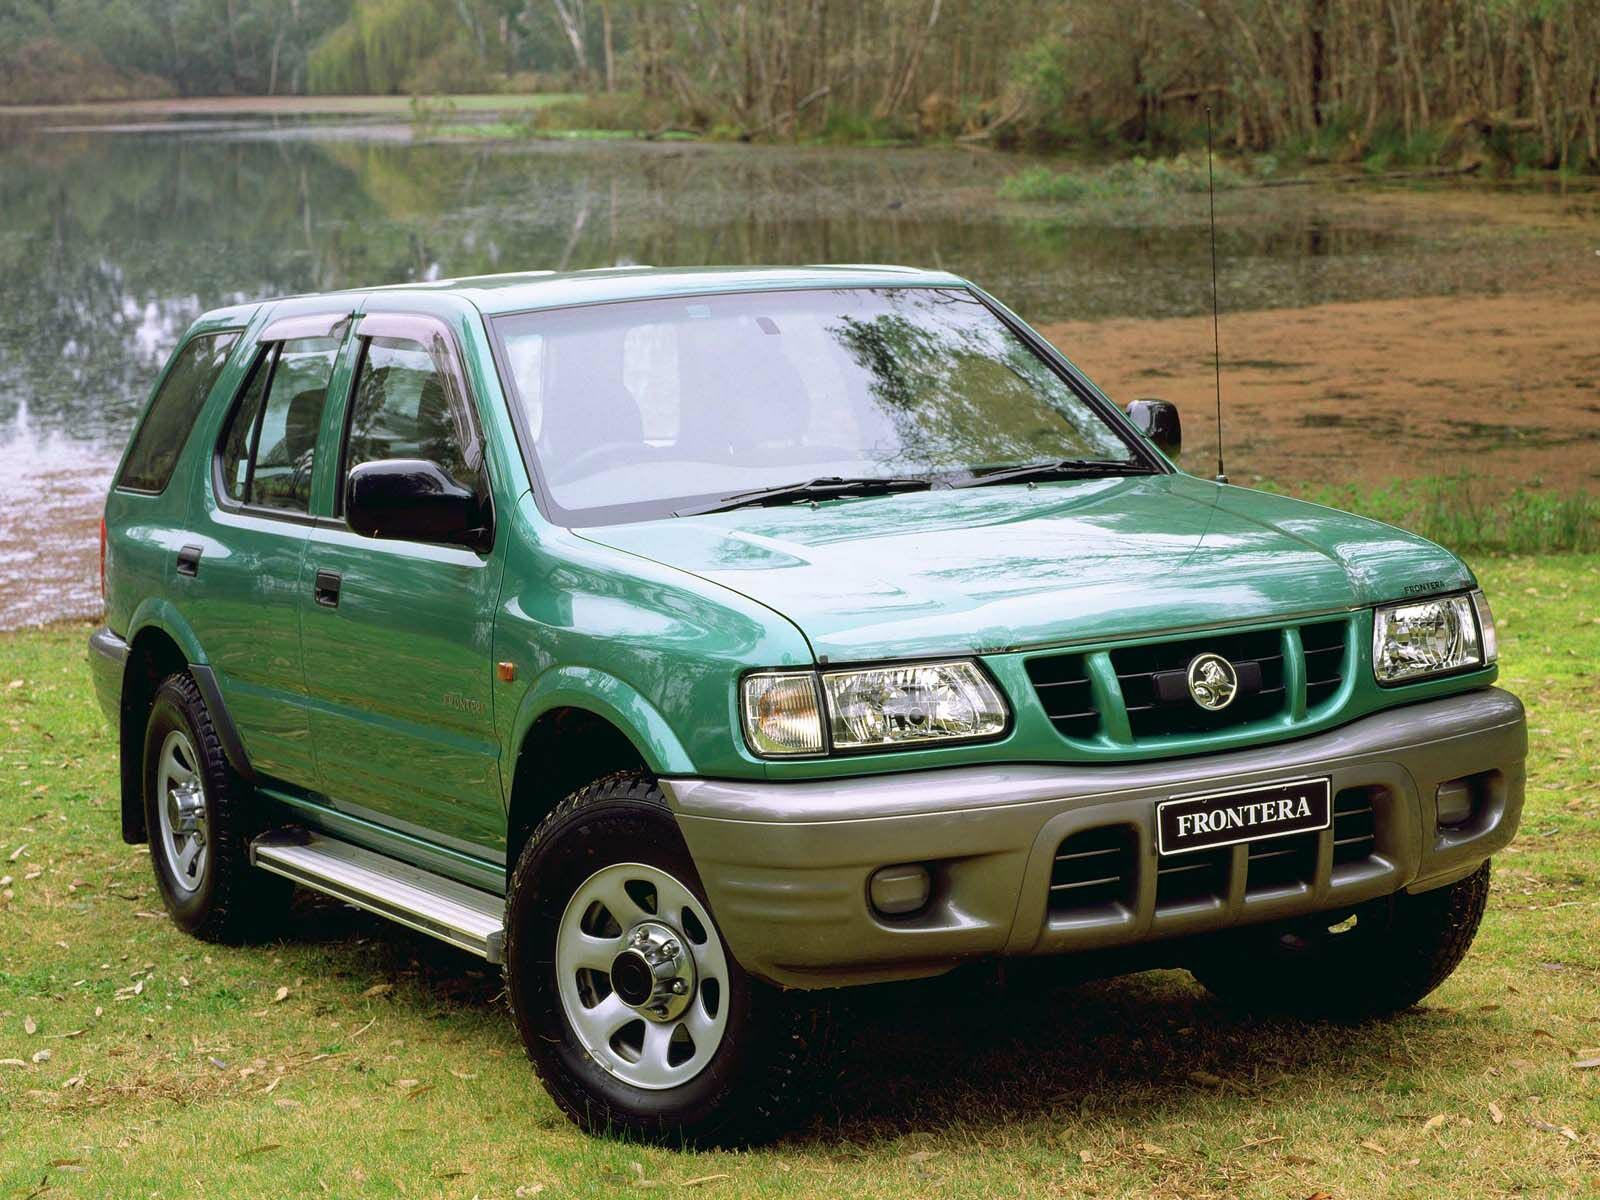 Cars holden frontera #3